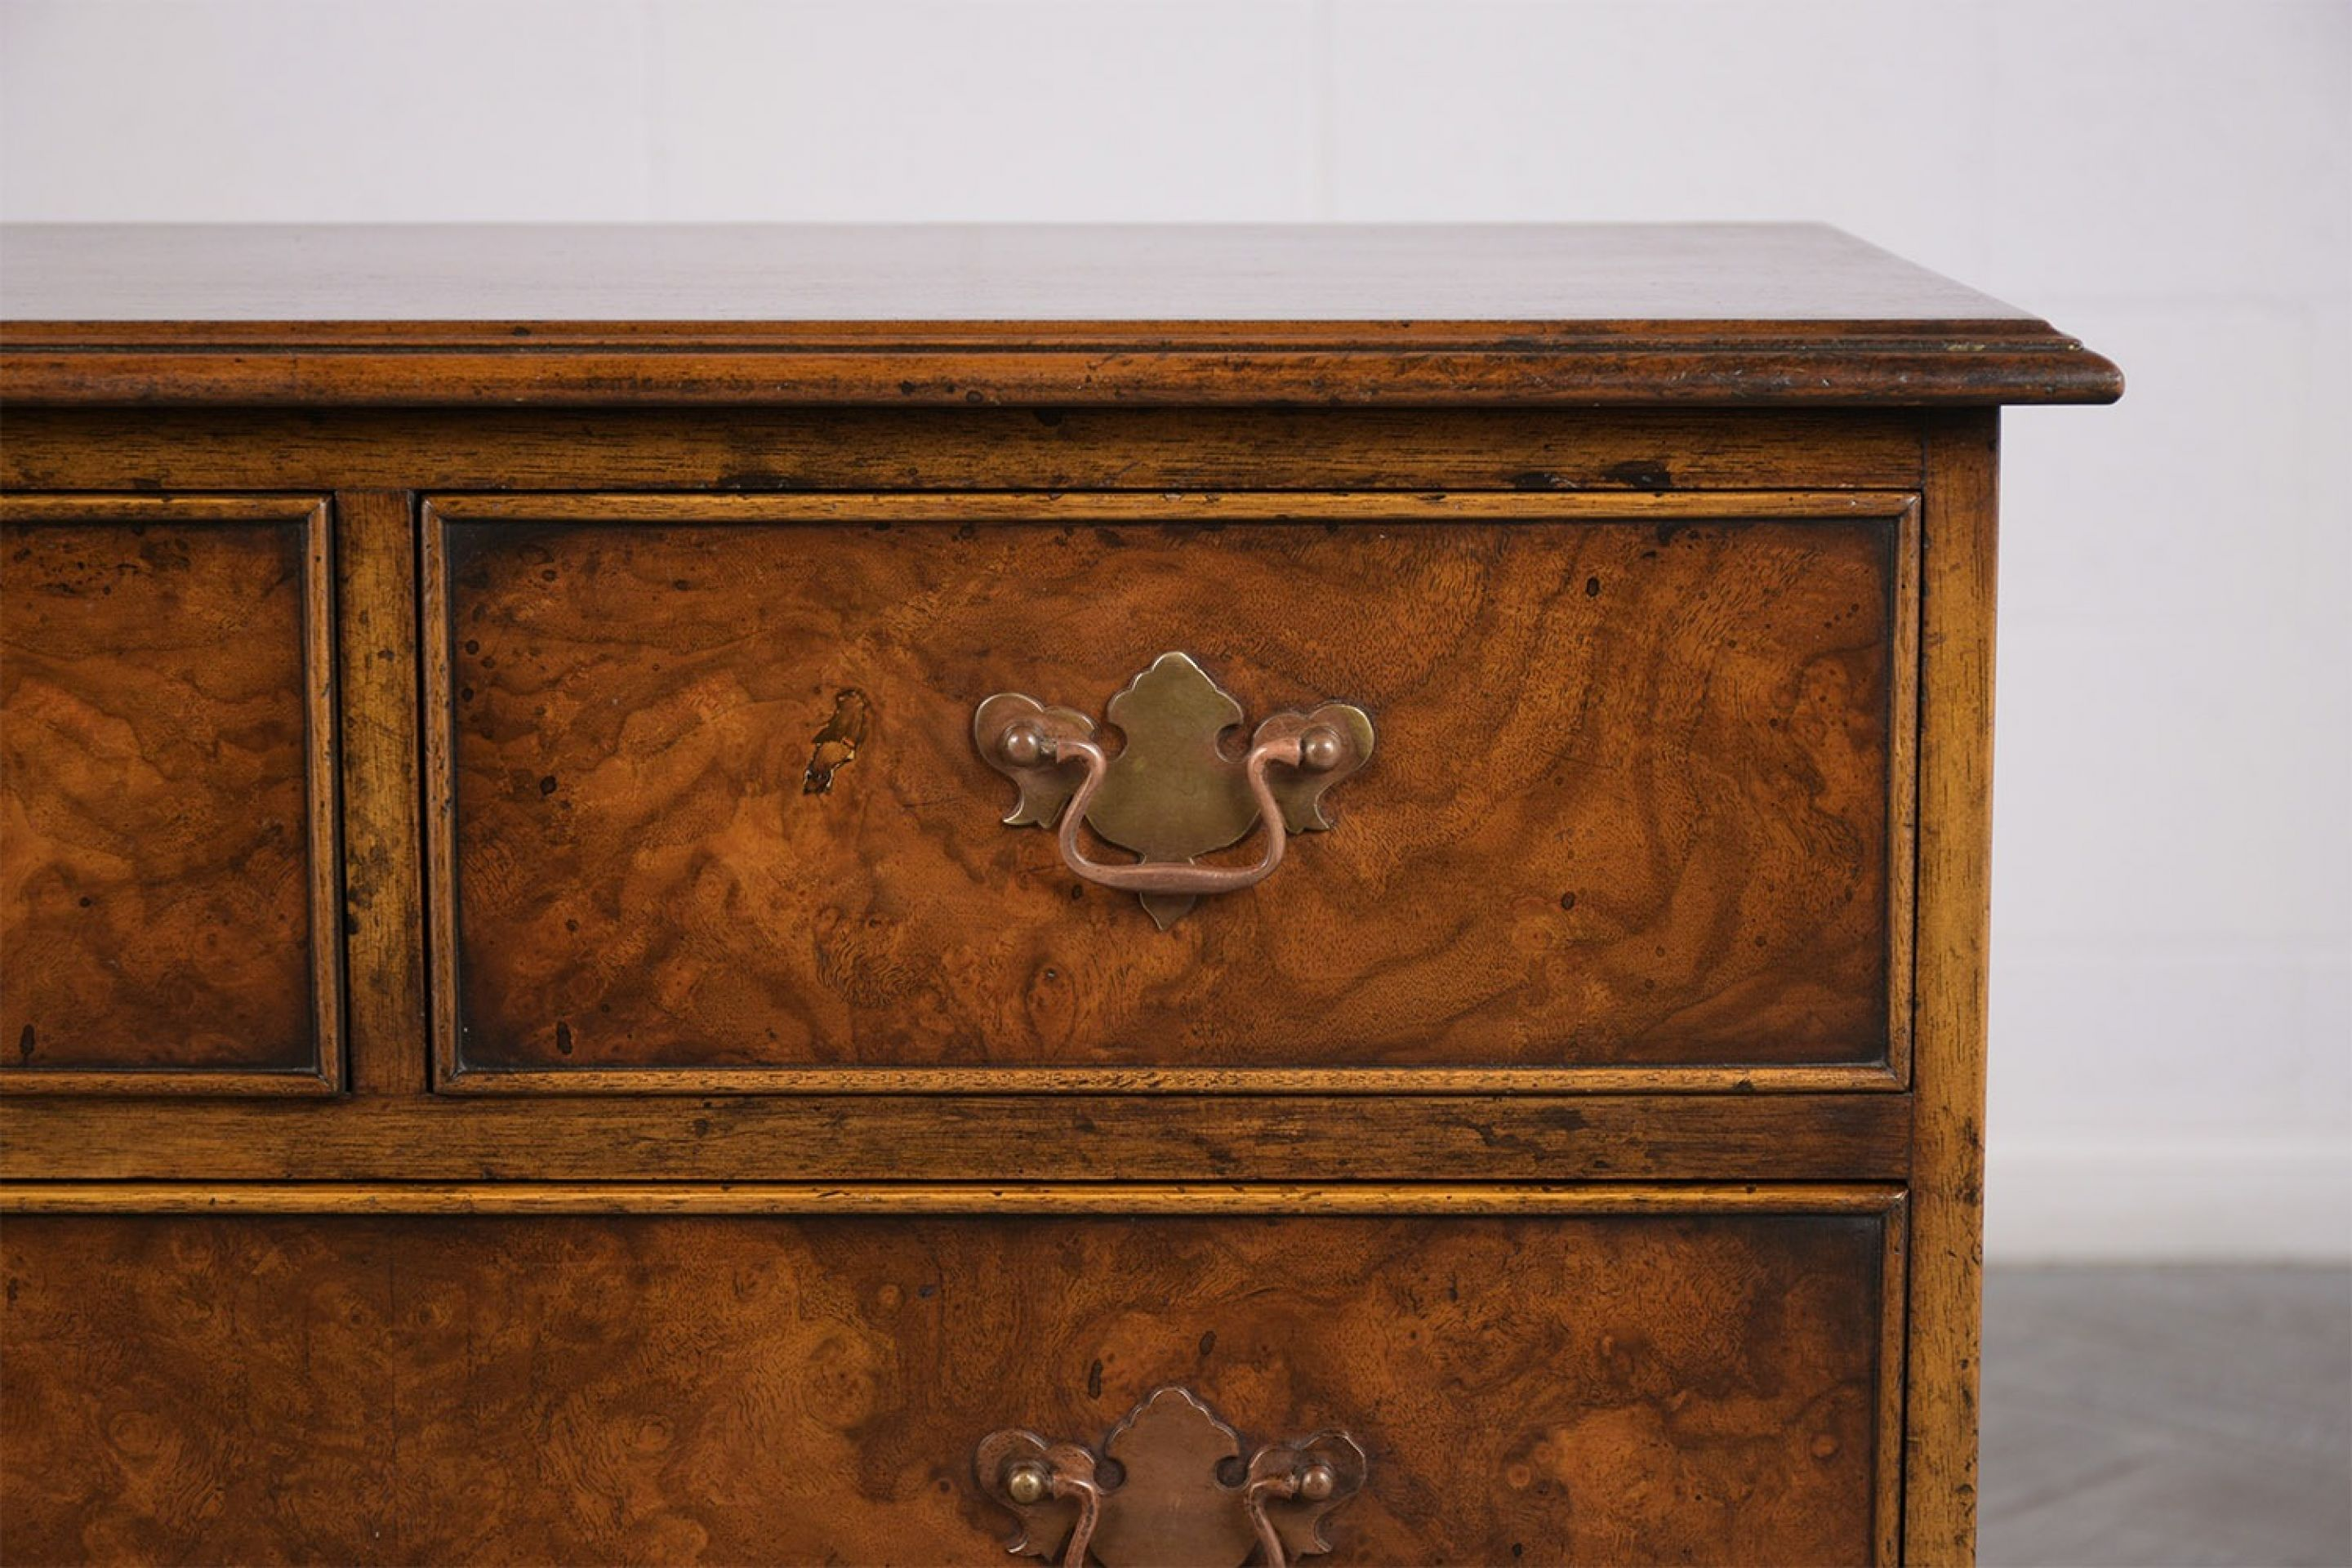 1970's Vintage Regency-Style Chest of Drawers Fully Functioning